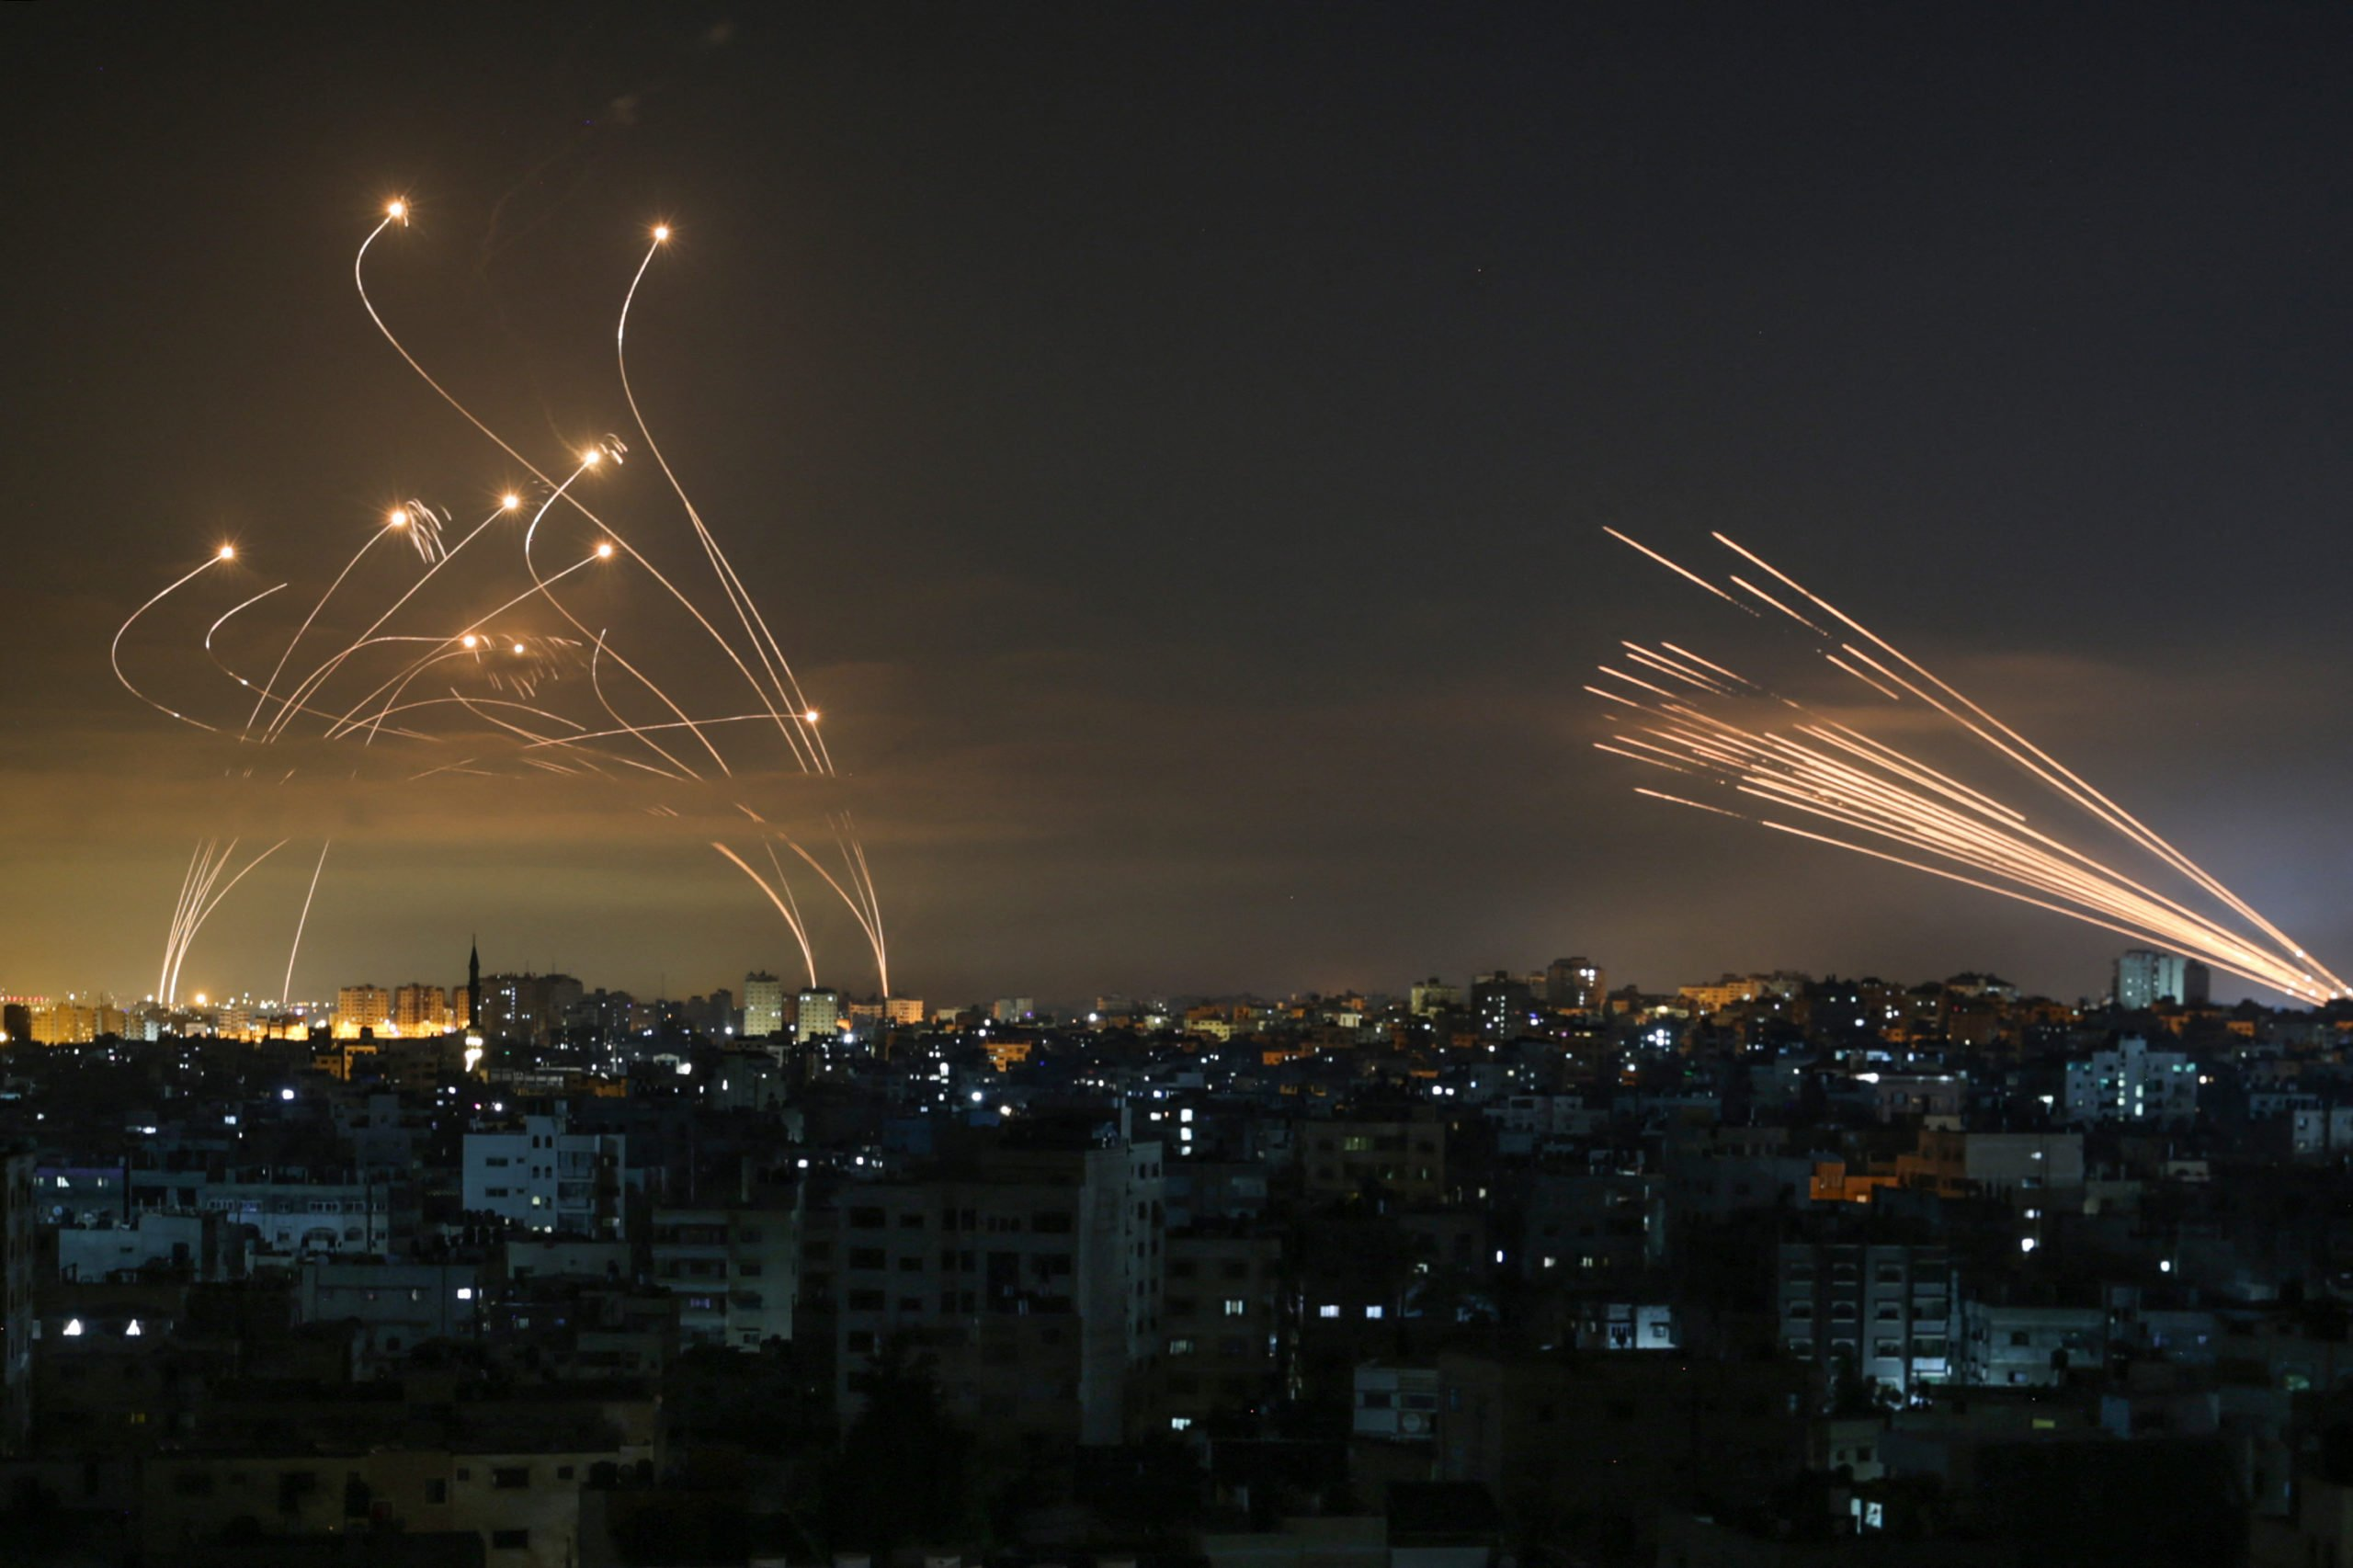 The Israeli Iron Dome missile defence system (L) intercepts rockets (R) fired by the Hamas movement towards southern Israel from Beit Lahia in the northern Gaza Strip as seen in the sky above the Gaza Strip overnight on May 14, 2021. (Photo by ANAS BABA/AFP via Getty Images)